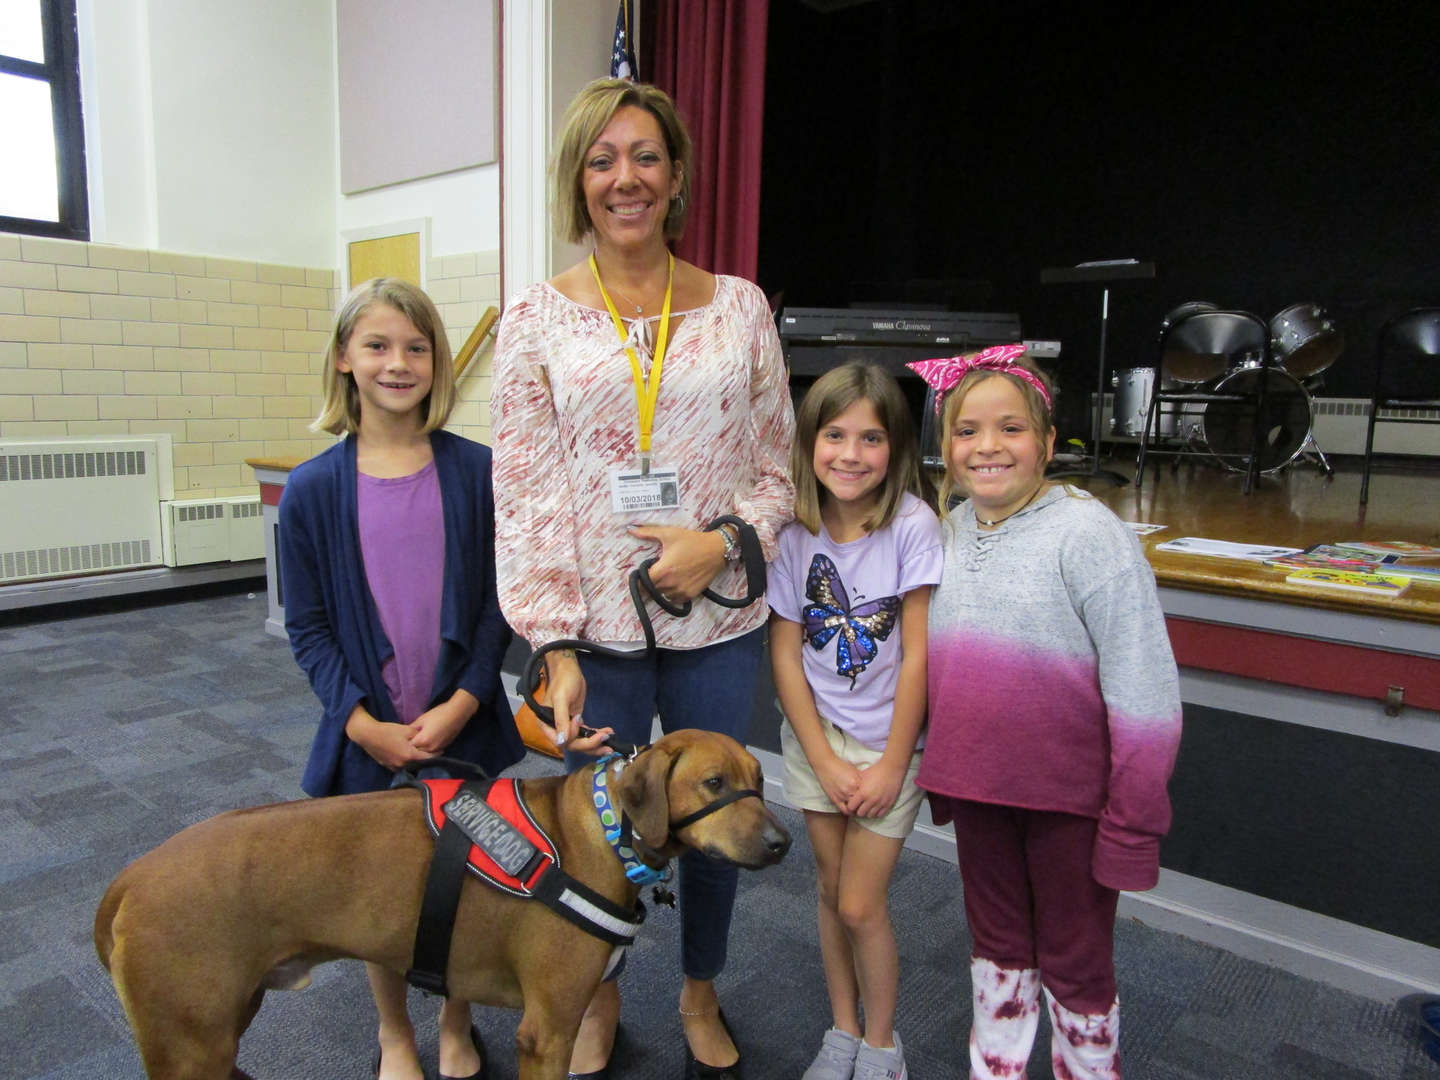 Merlin's Kids Service Dog Meets DTS Students